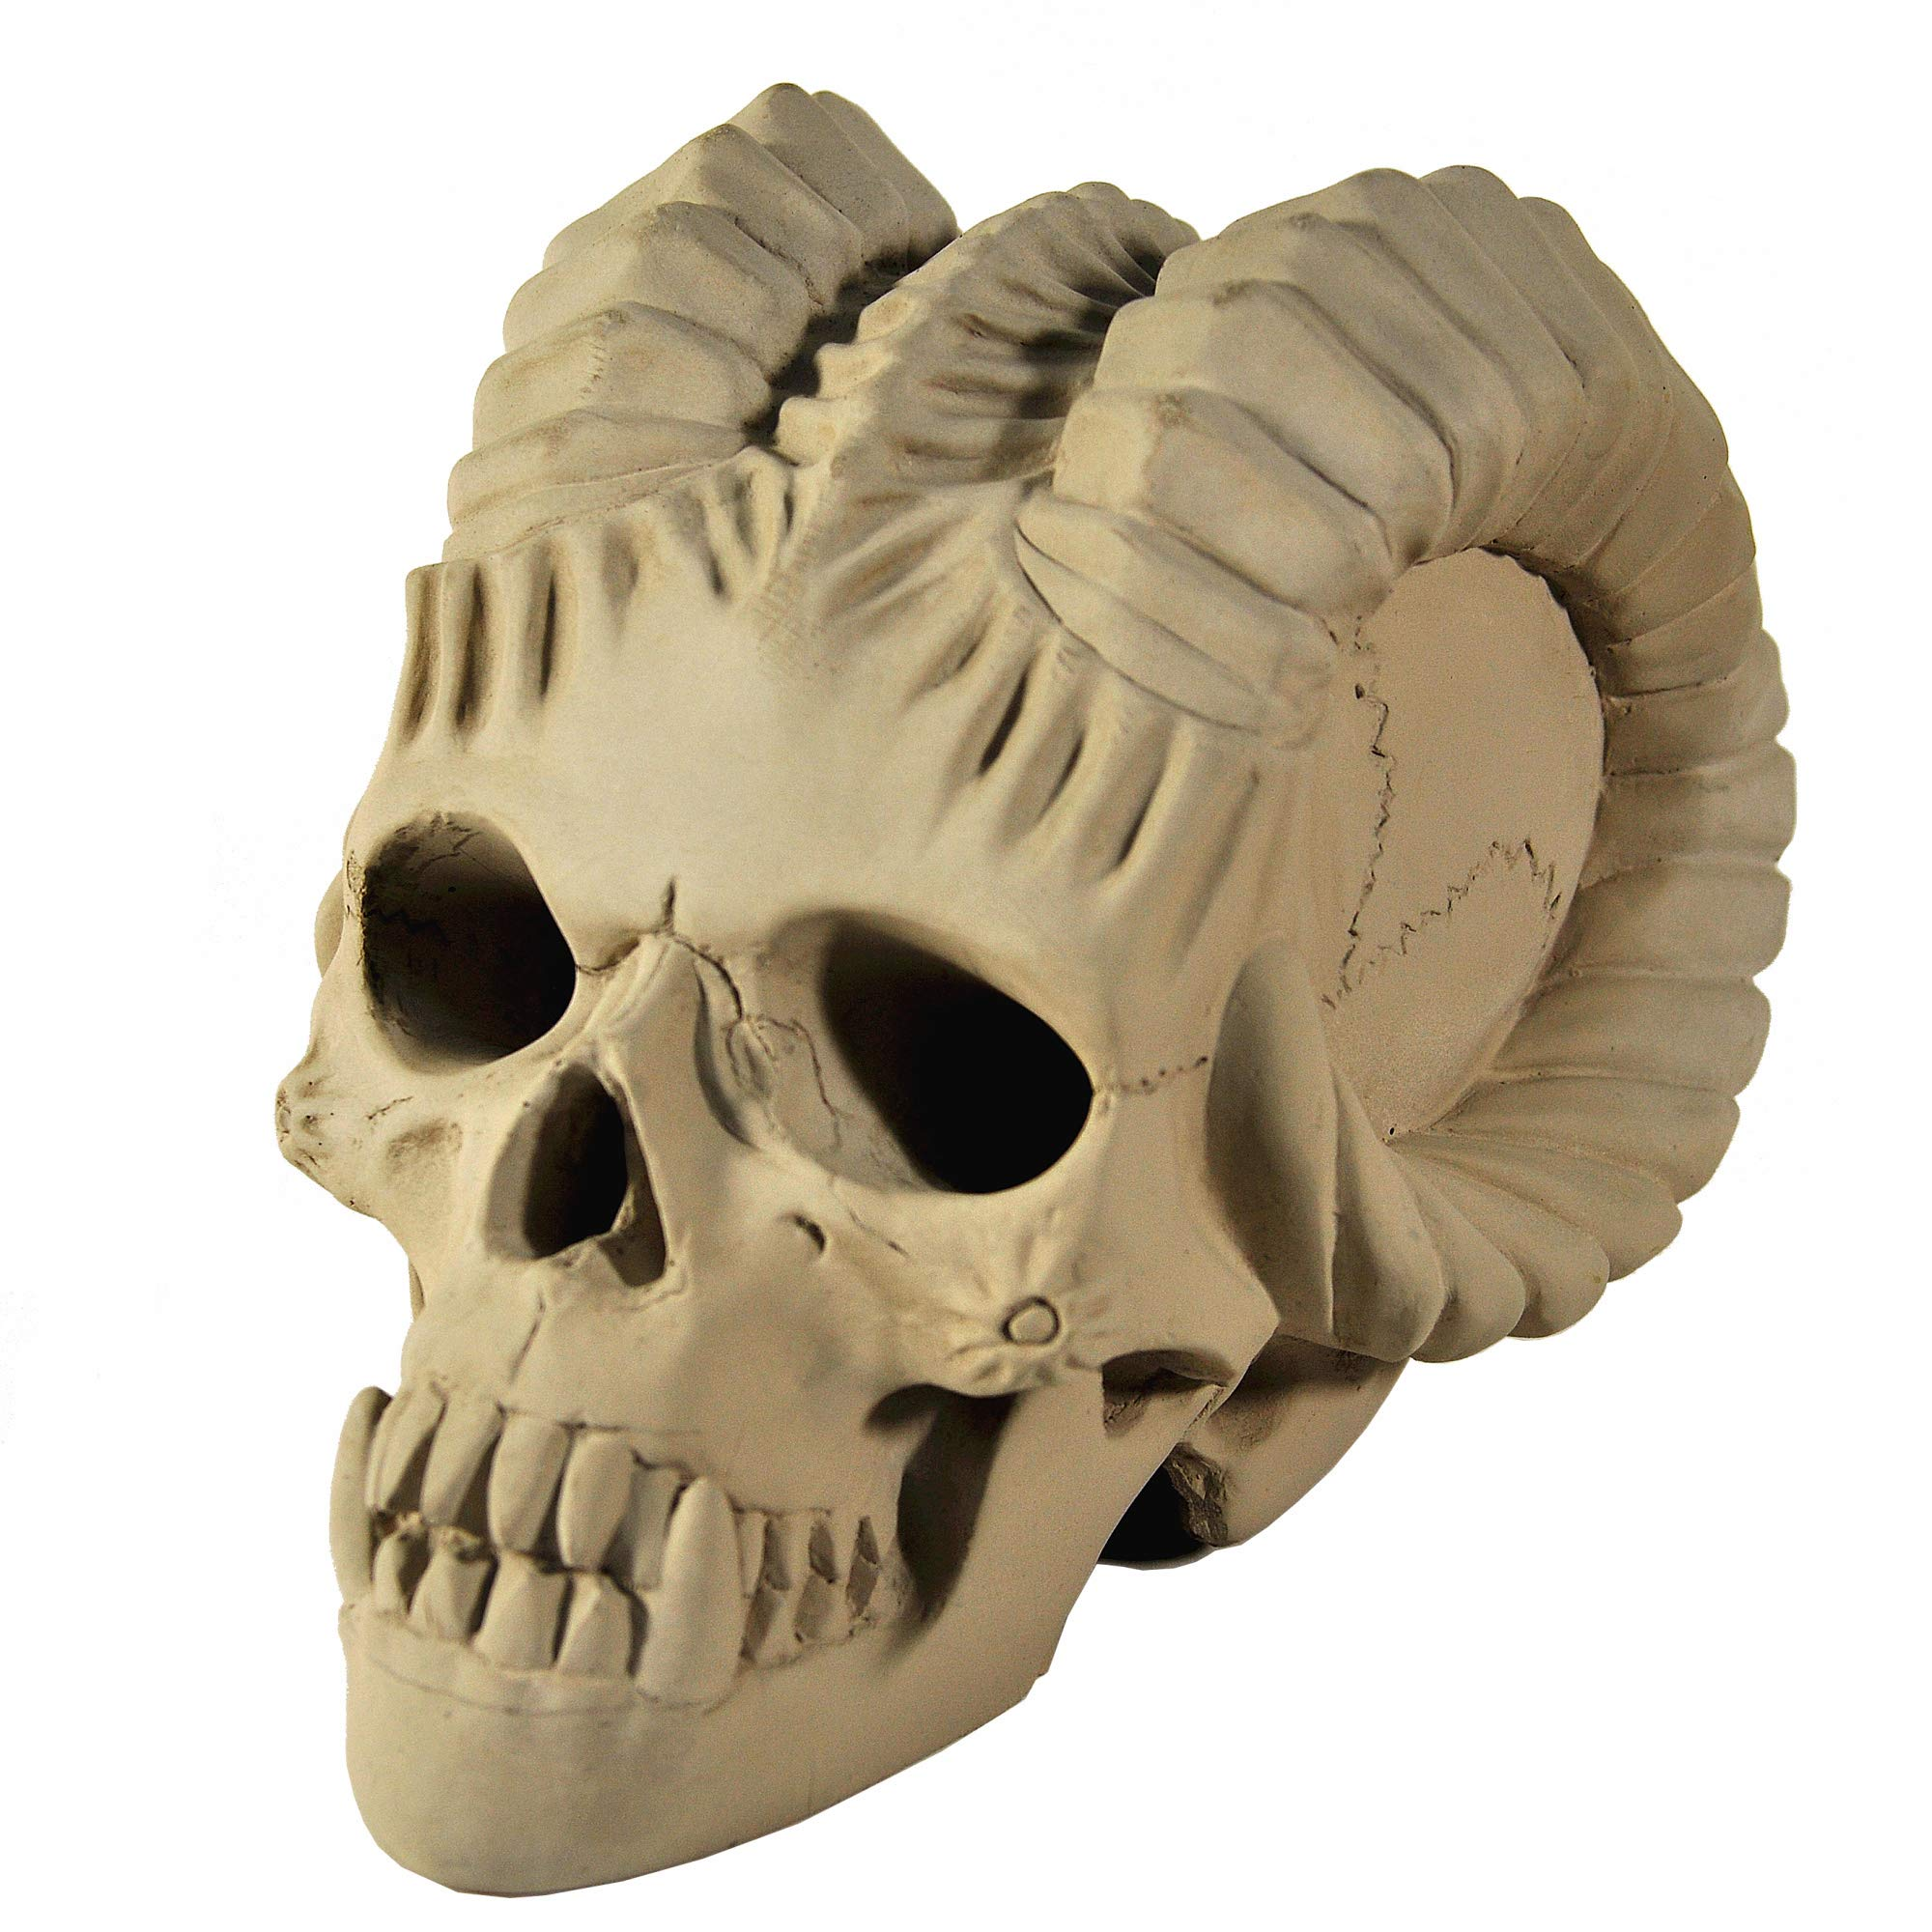 Myard Fireproof Demon Fire Pit Skull (Hollow, Flame from Eye Holes) Gas Log for NG, LP Wood Fireplace, Firepit, Campfire, Halloween Decor, BBQ (Qty 1, Demon Grey Skull)